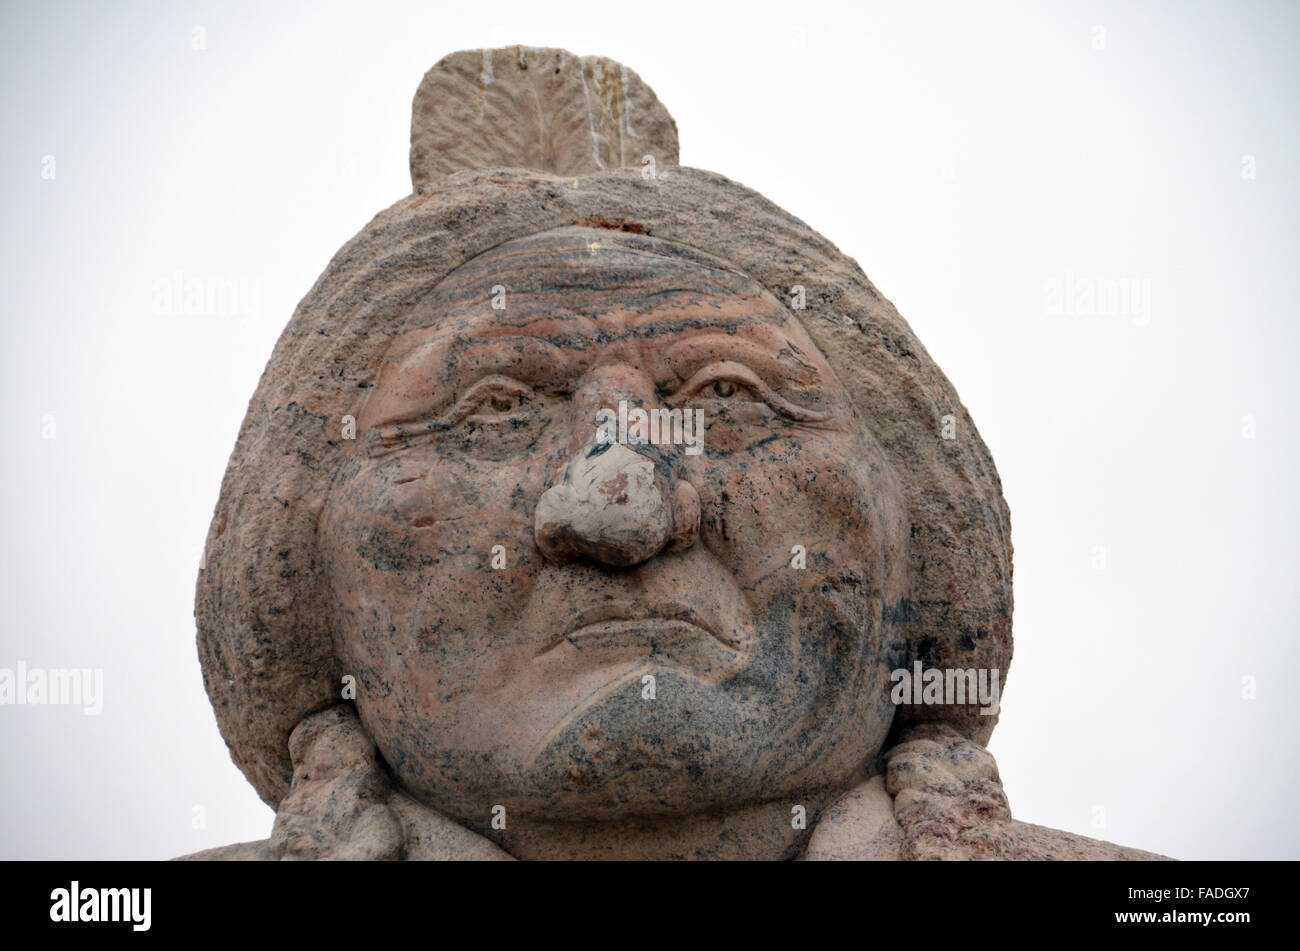 South Dakota, USA. 8th Apr, 2015. A statue at the grave of Sioux chief Sitting Bull in South Dakota, USA, 8 April Stock Photo